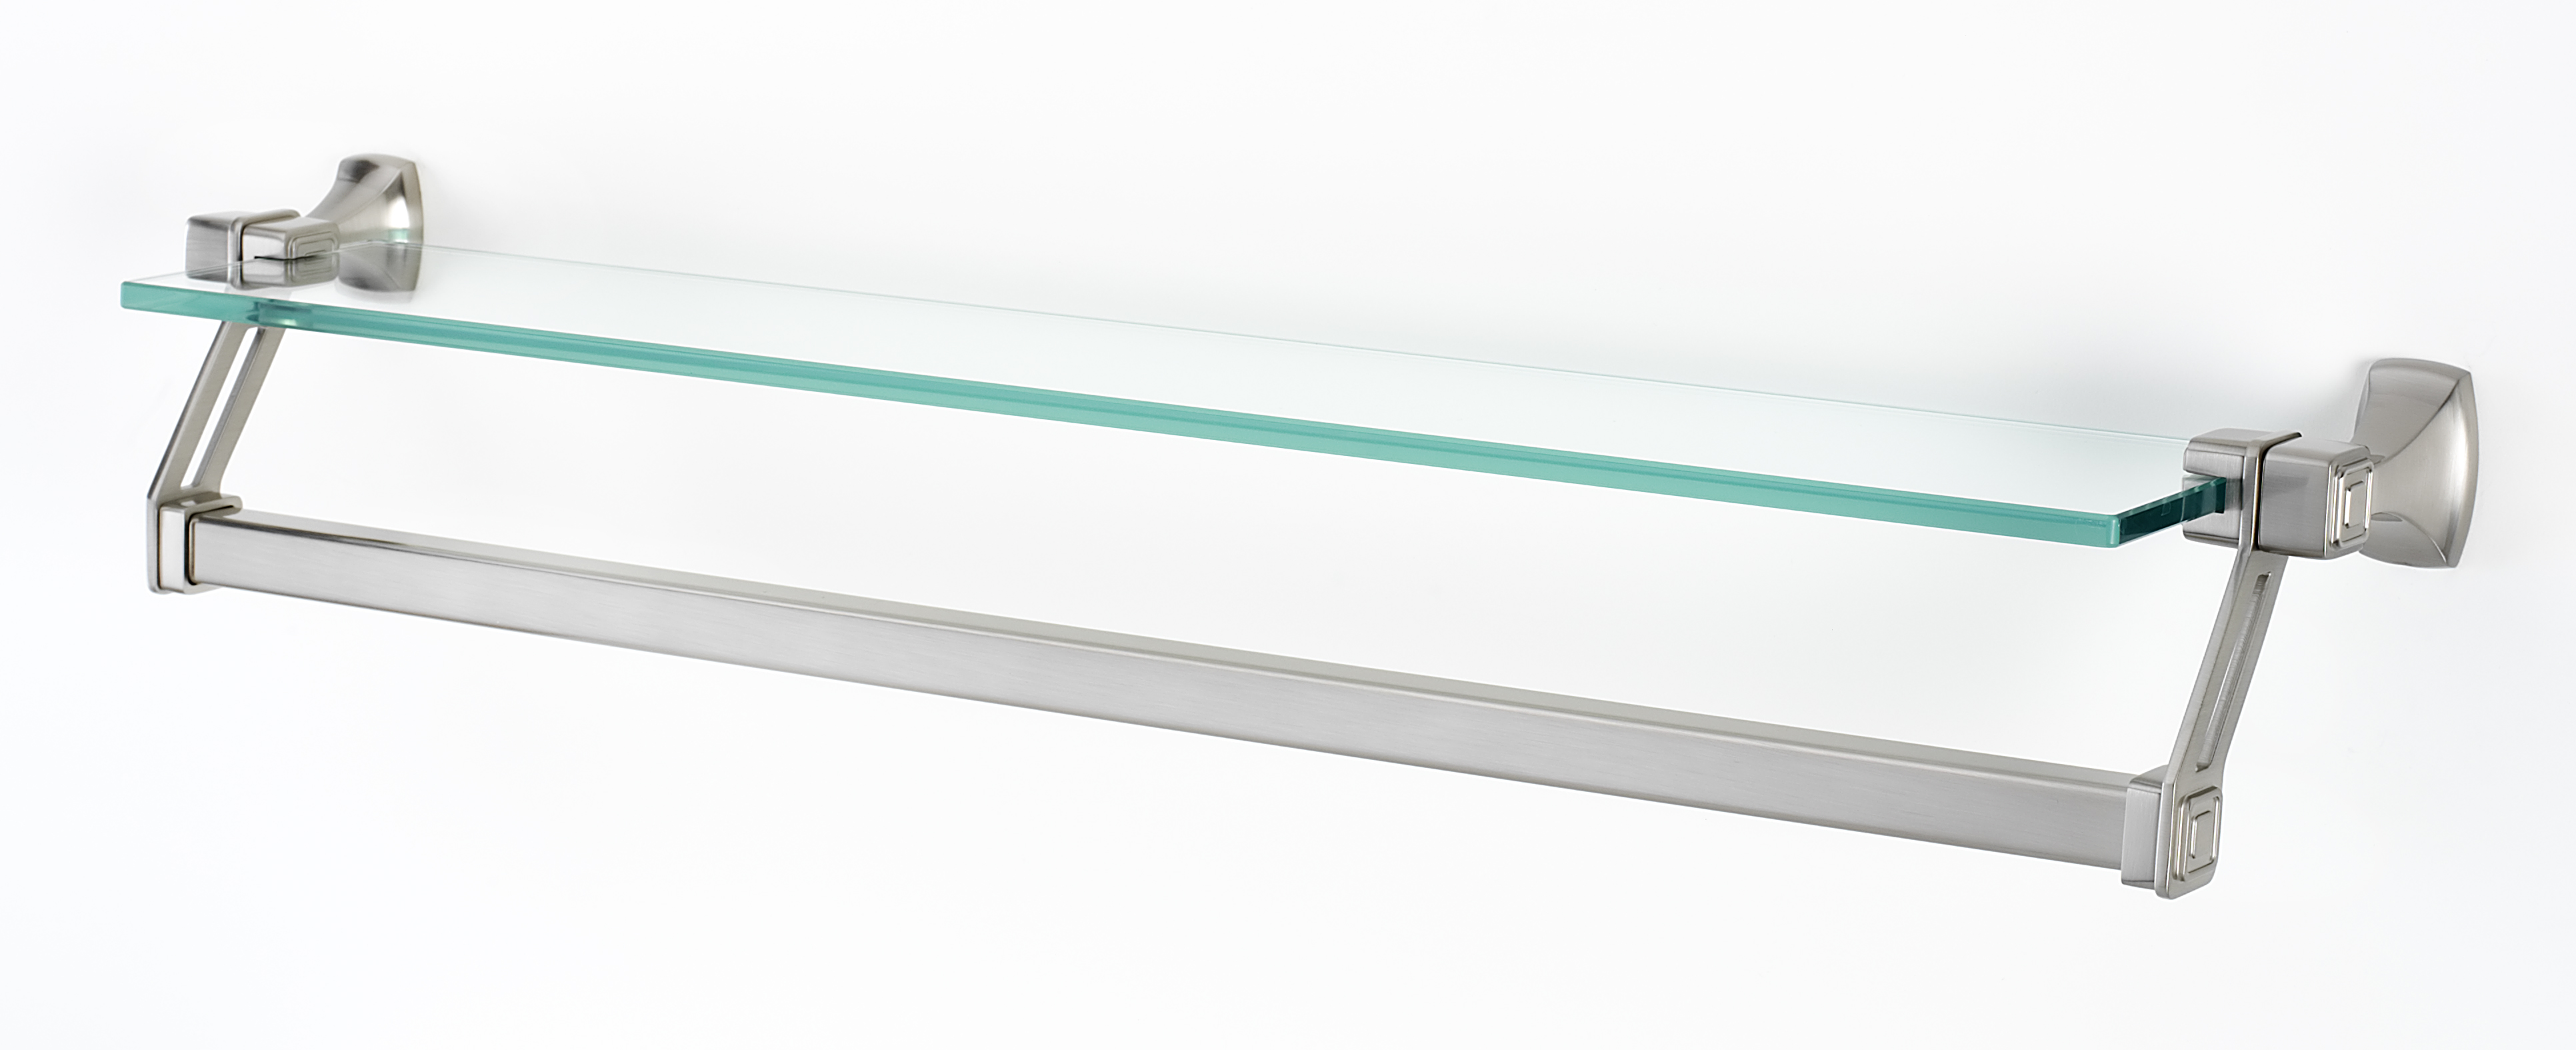 Cube Glass Shelf with Towel Bar A6527-25 – \